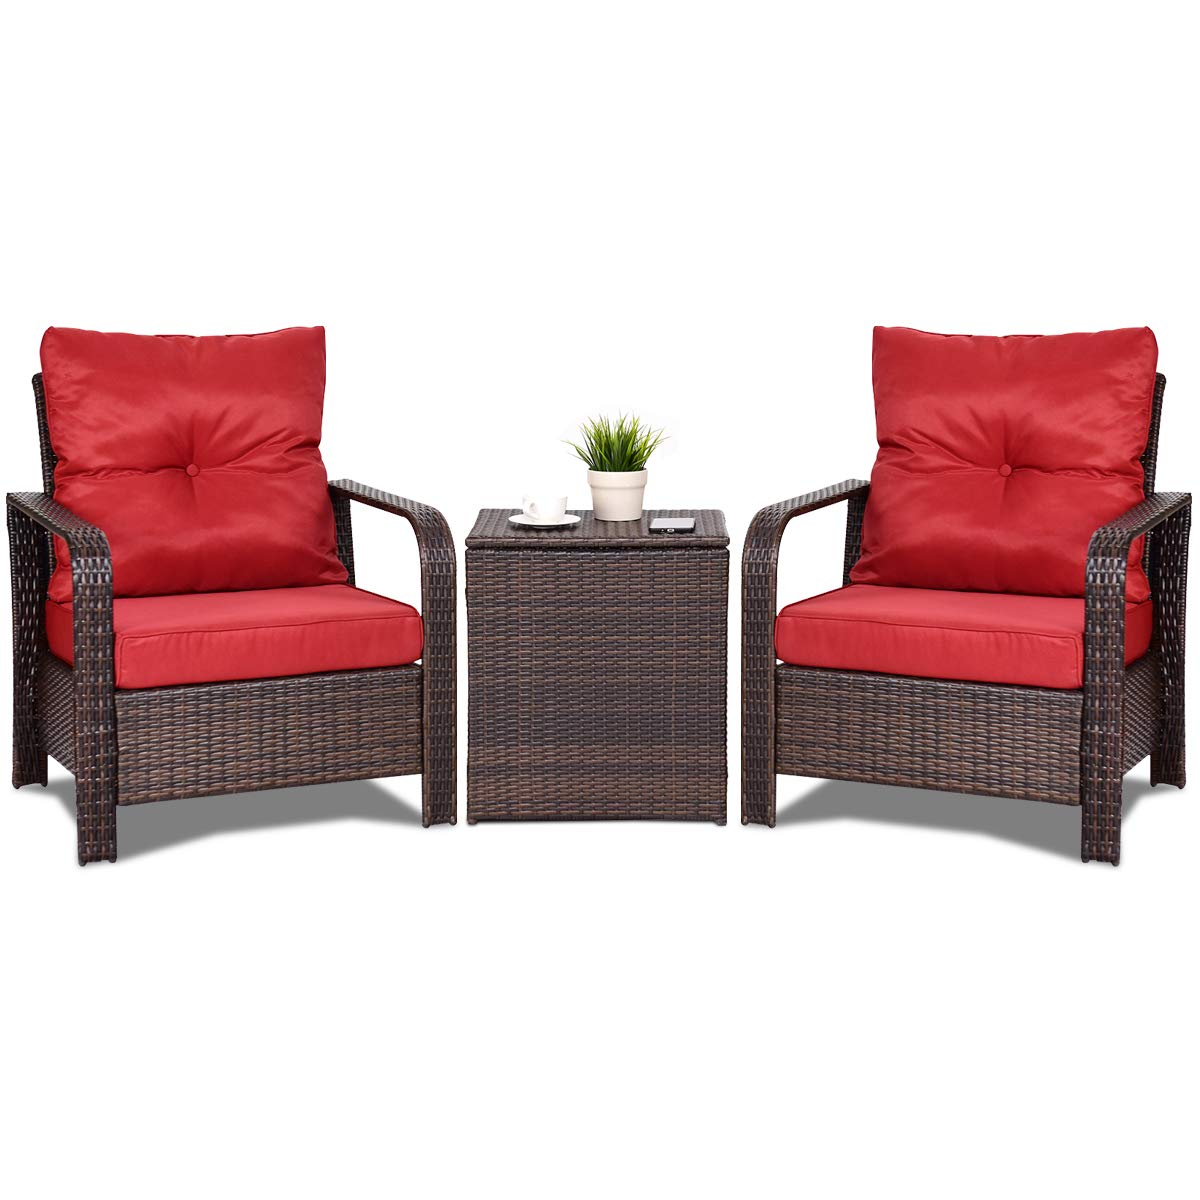 Tangkula conversation set outdoor patio 3 piece all weather proof sturdy wicker chairs coffee table set rattan furniture sofa set with thick cushions